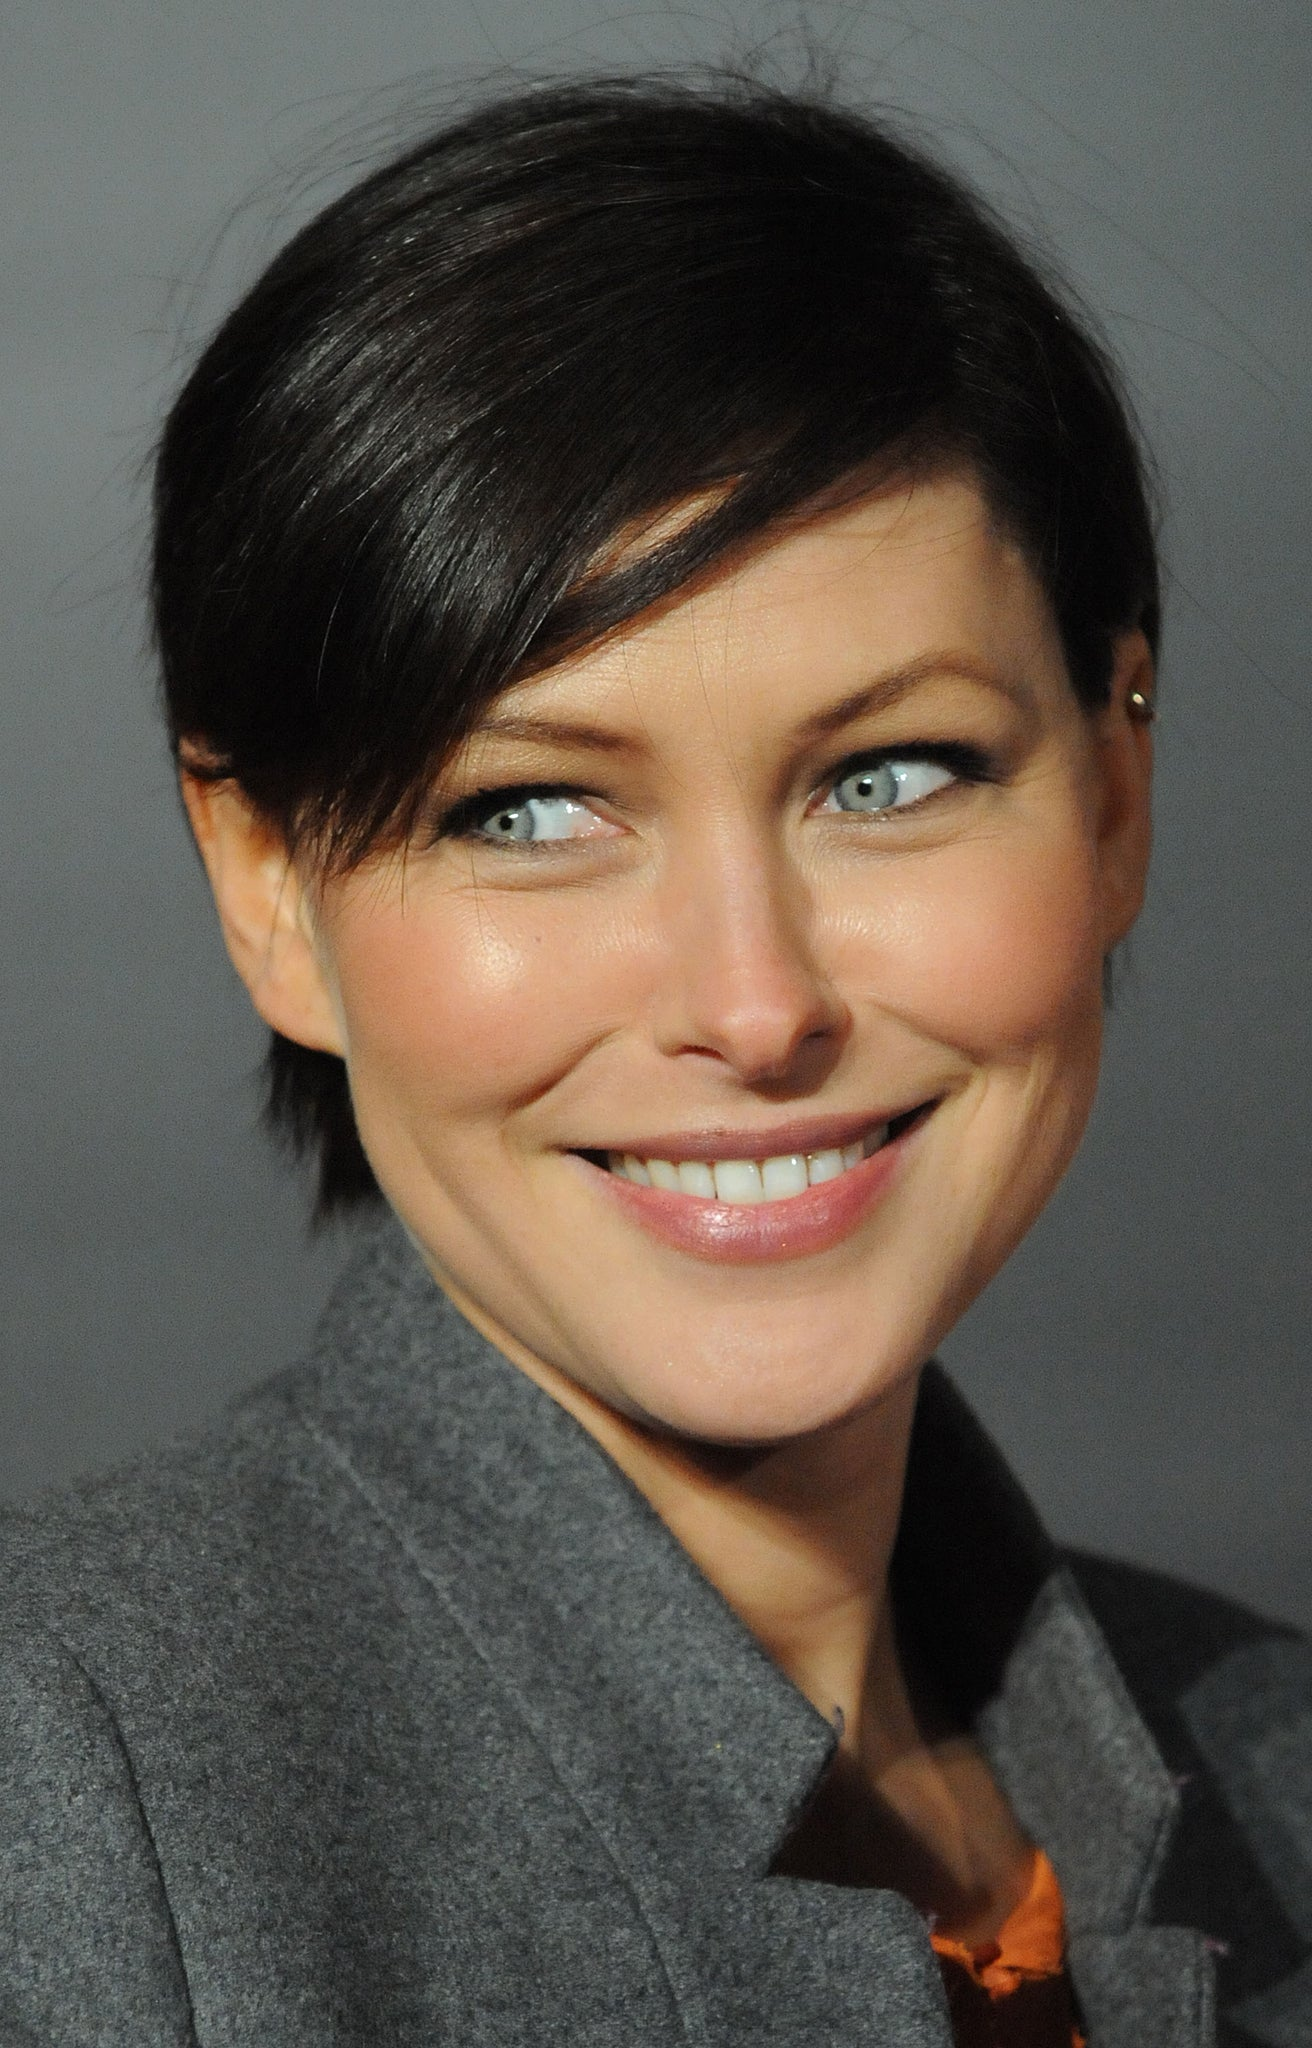 Thrilled Emma Willis ousts Brian Dowling as host of Big